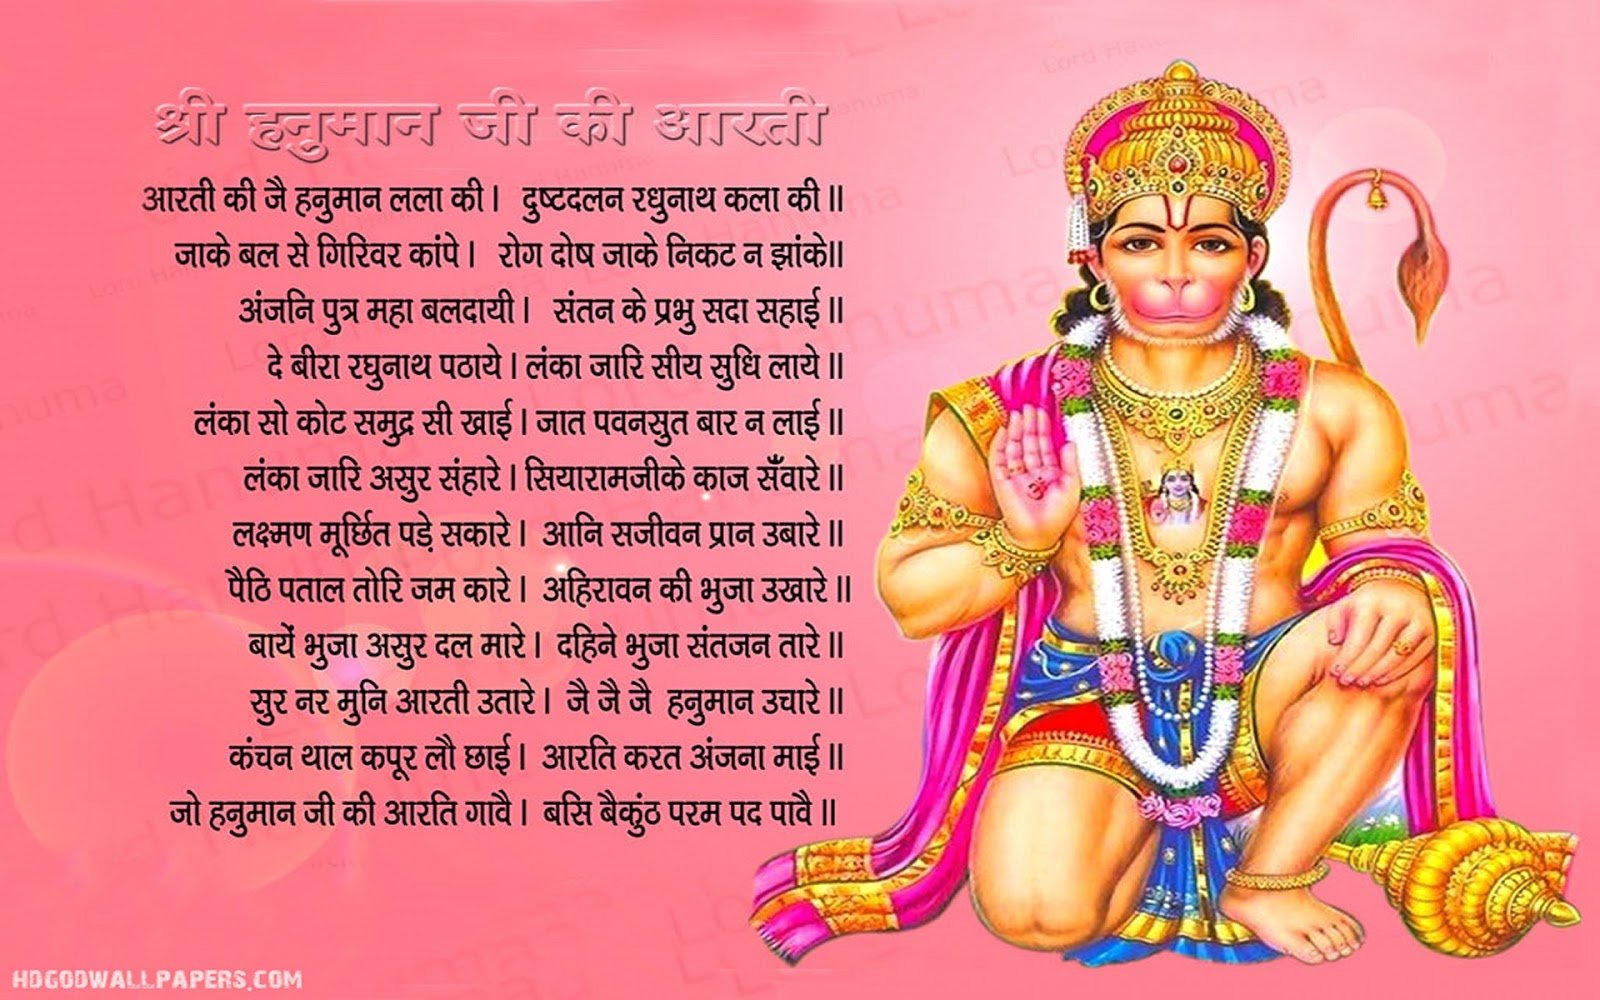 car wallpaper - 100+ EPIC Best Hanuman Chalisa Hd Wallpaper